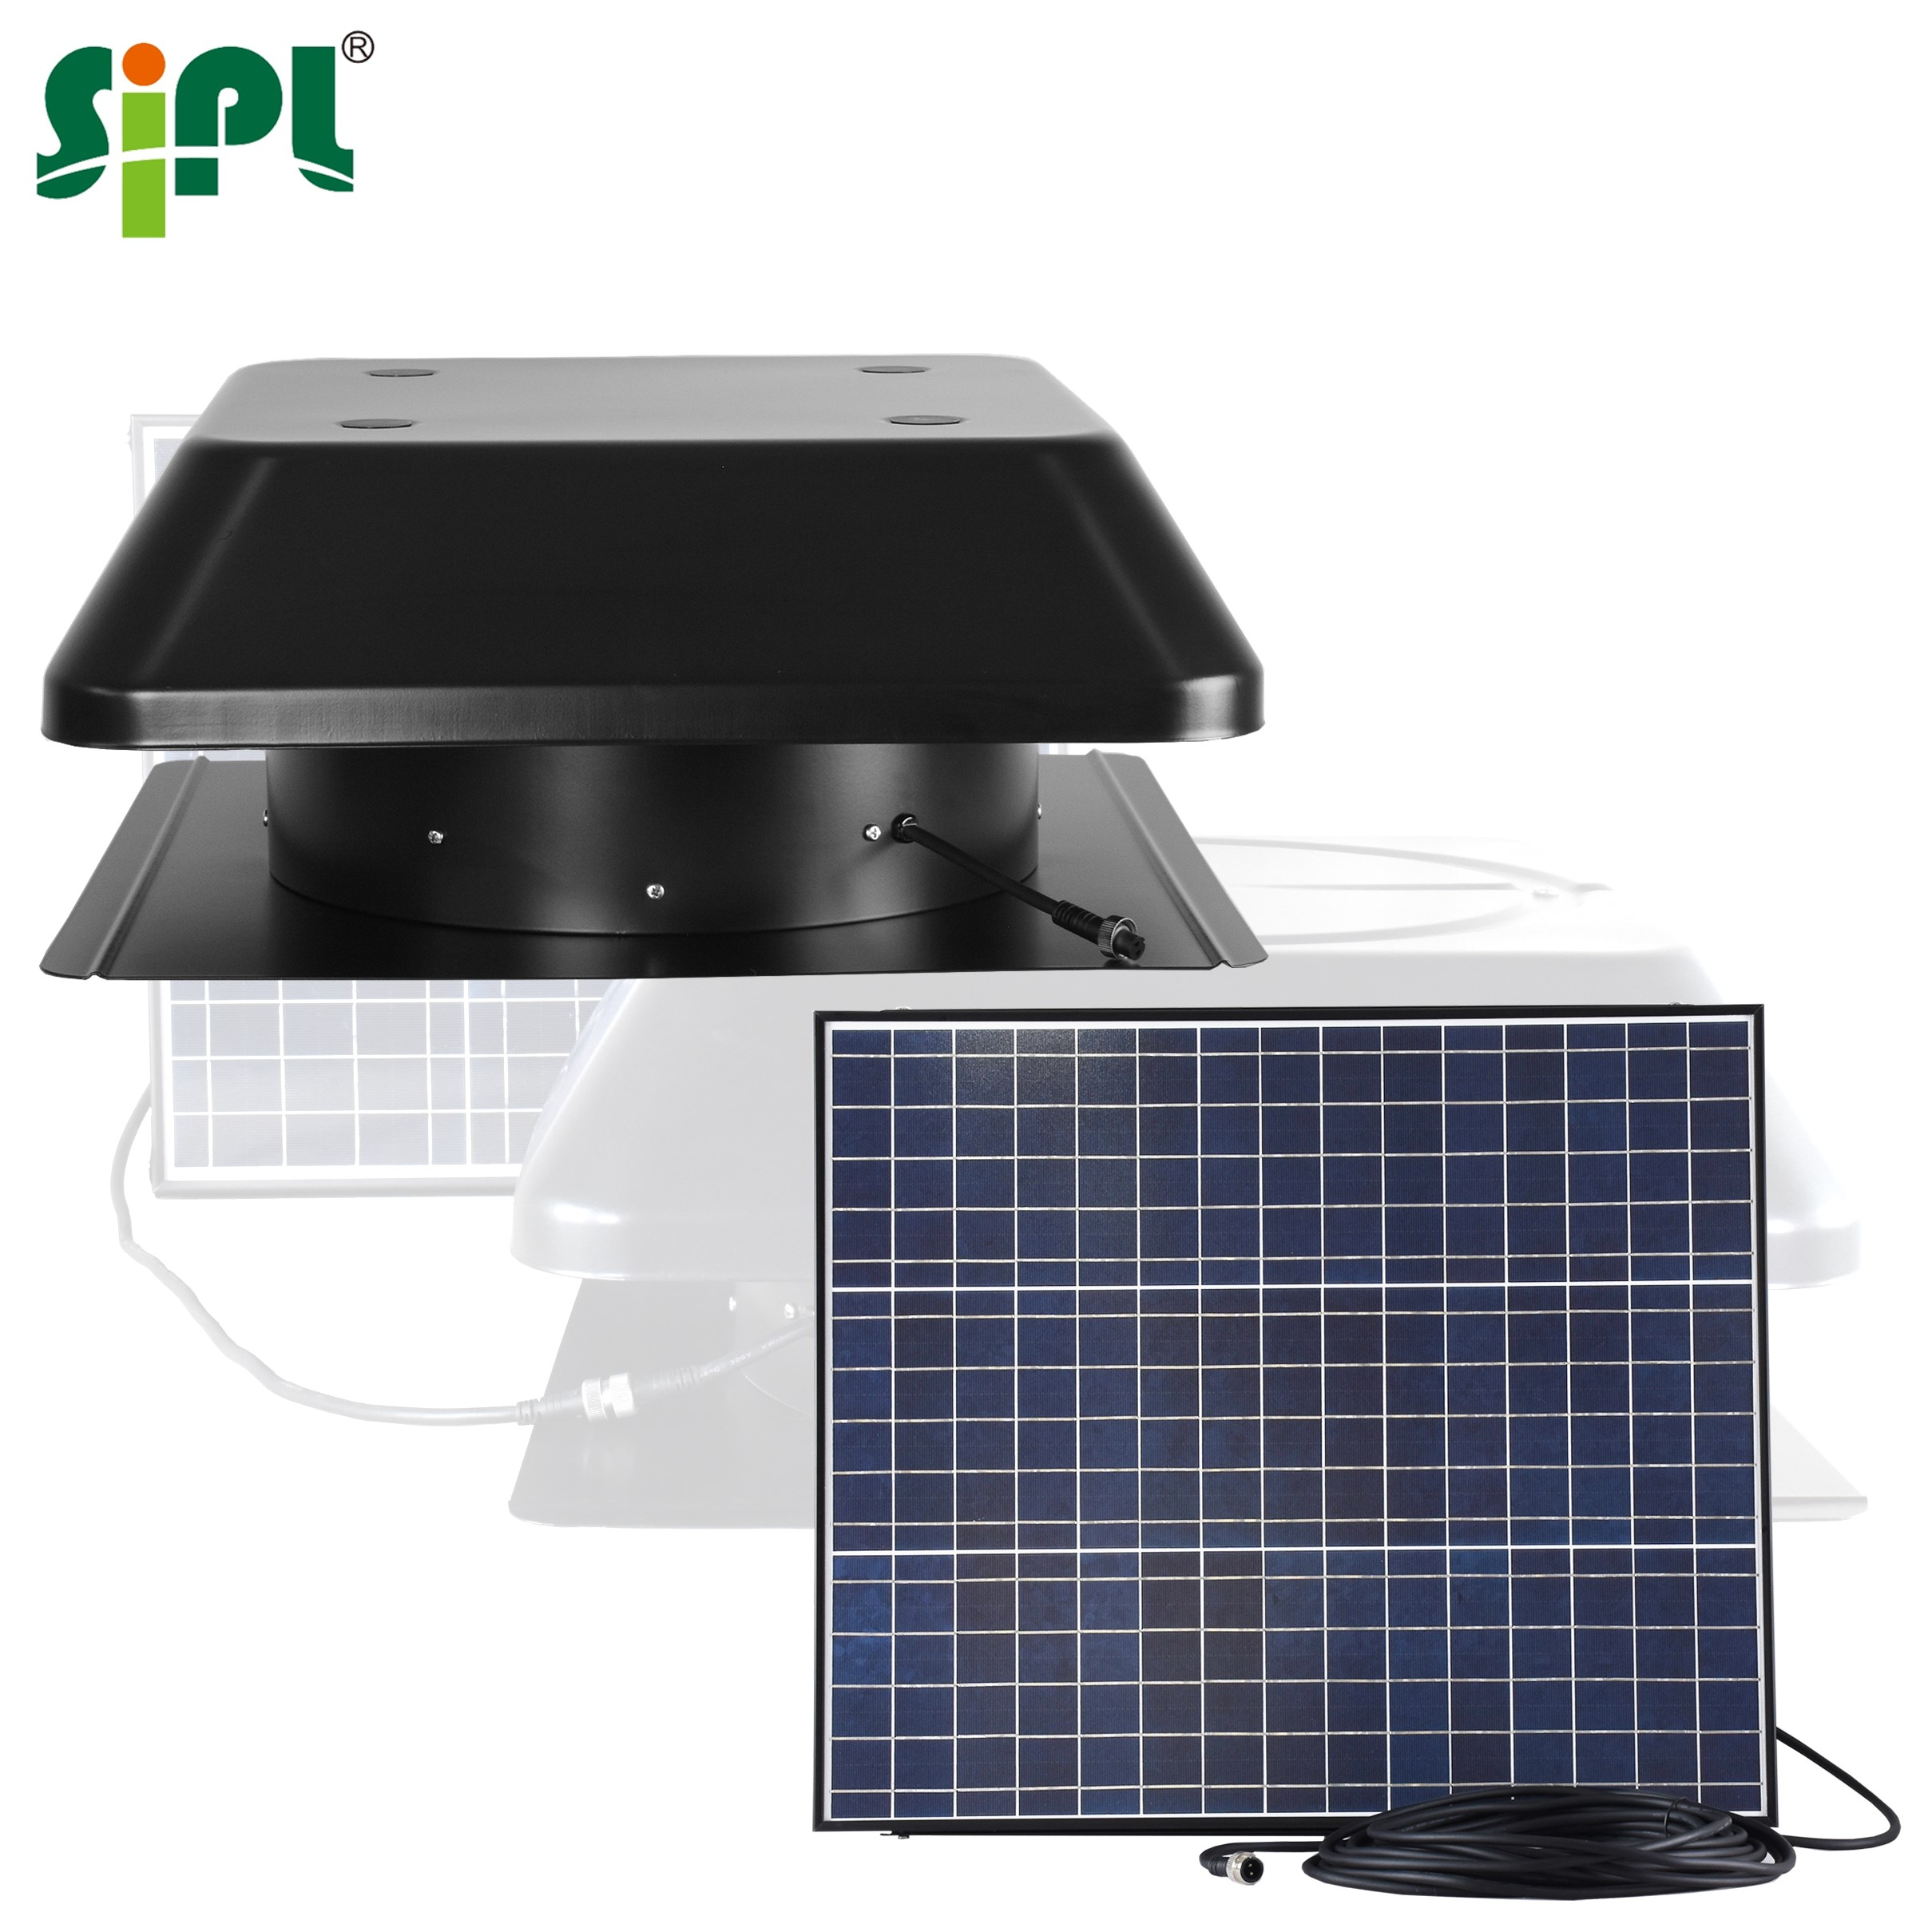 Eco Solar Vent Tools Sunlight Power Heat Extractor Smoke Fan 50W Roof <strong>Turbine</strong> <strong>Wind</strong> Blower Attic Gable Basement Ventilation Fan